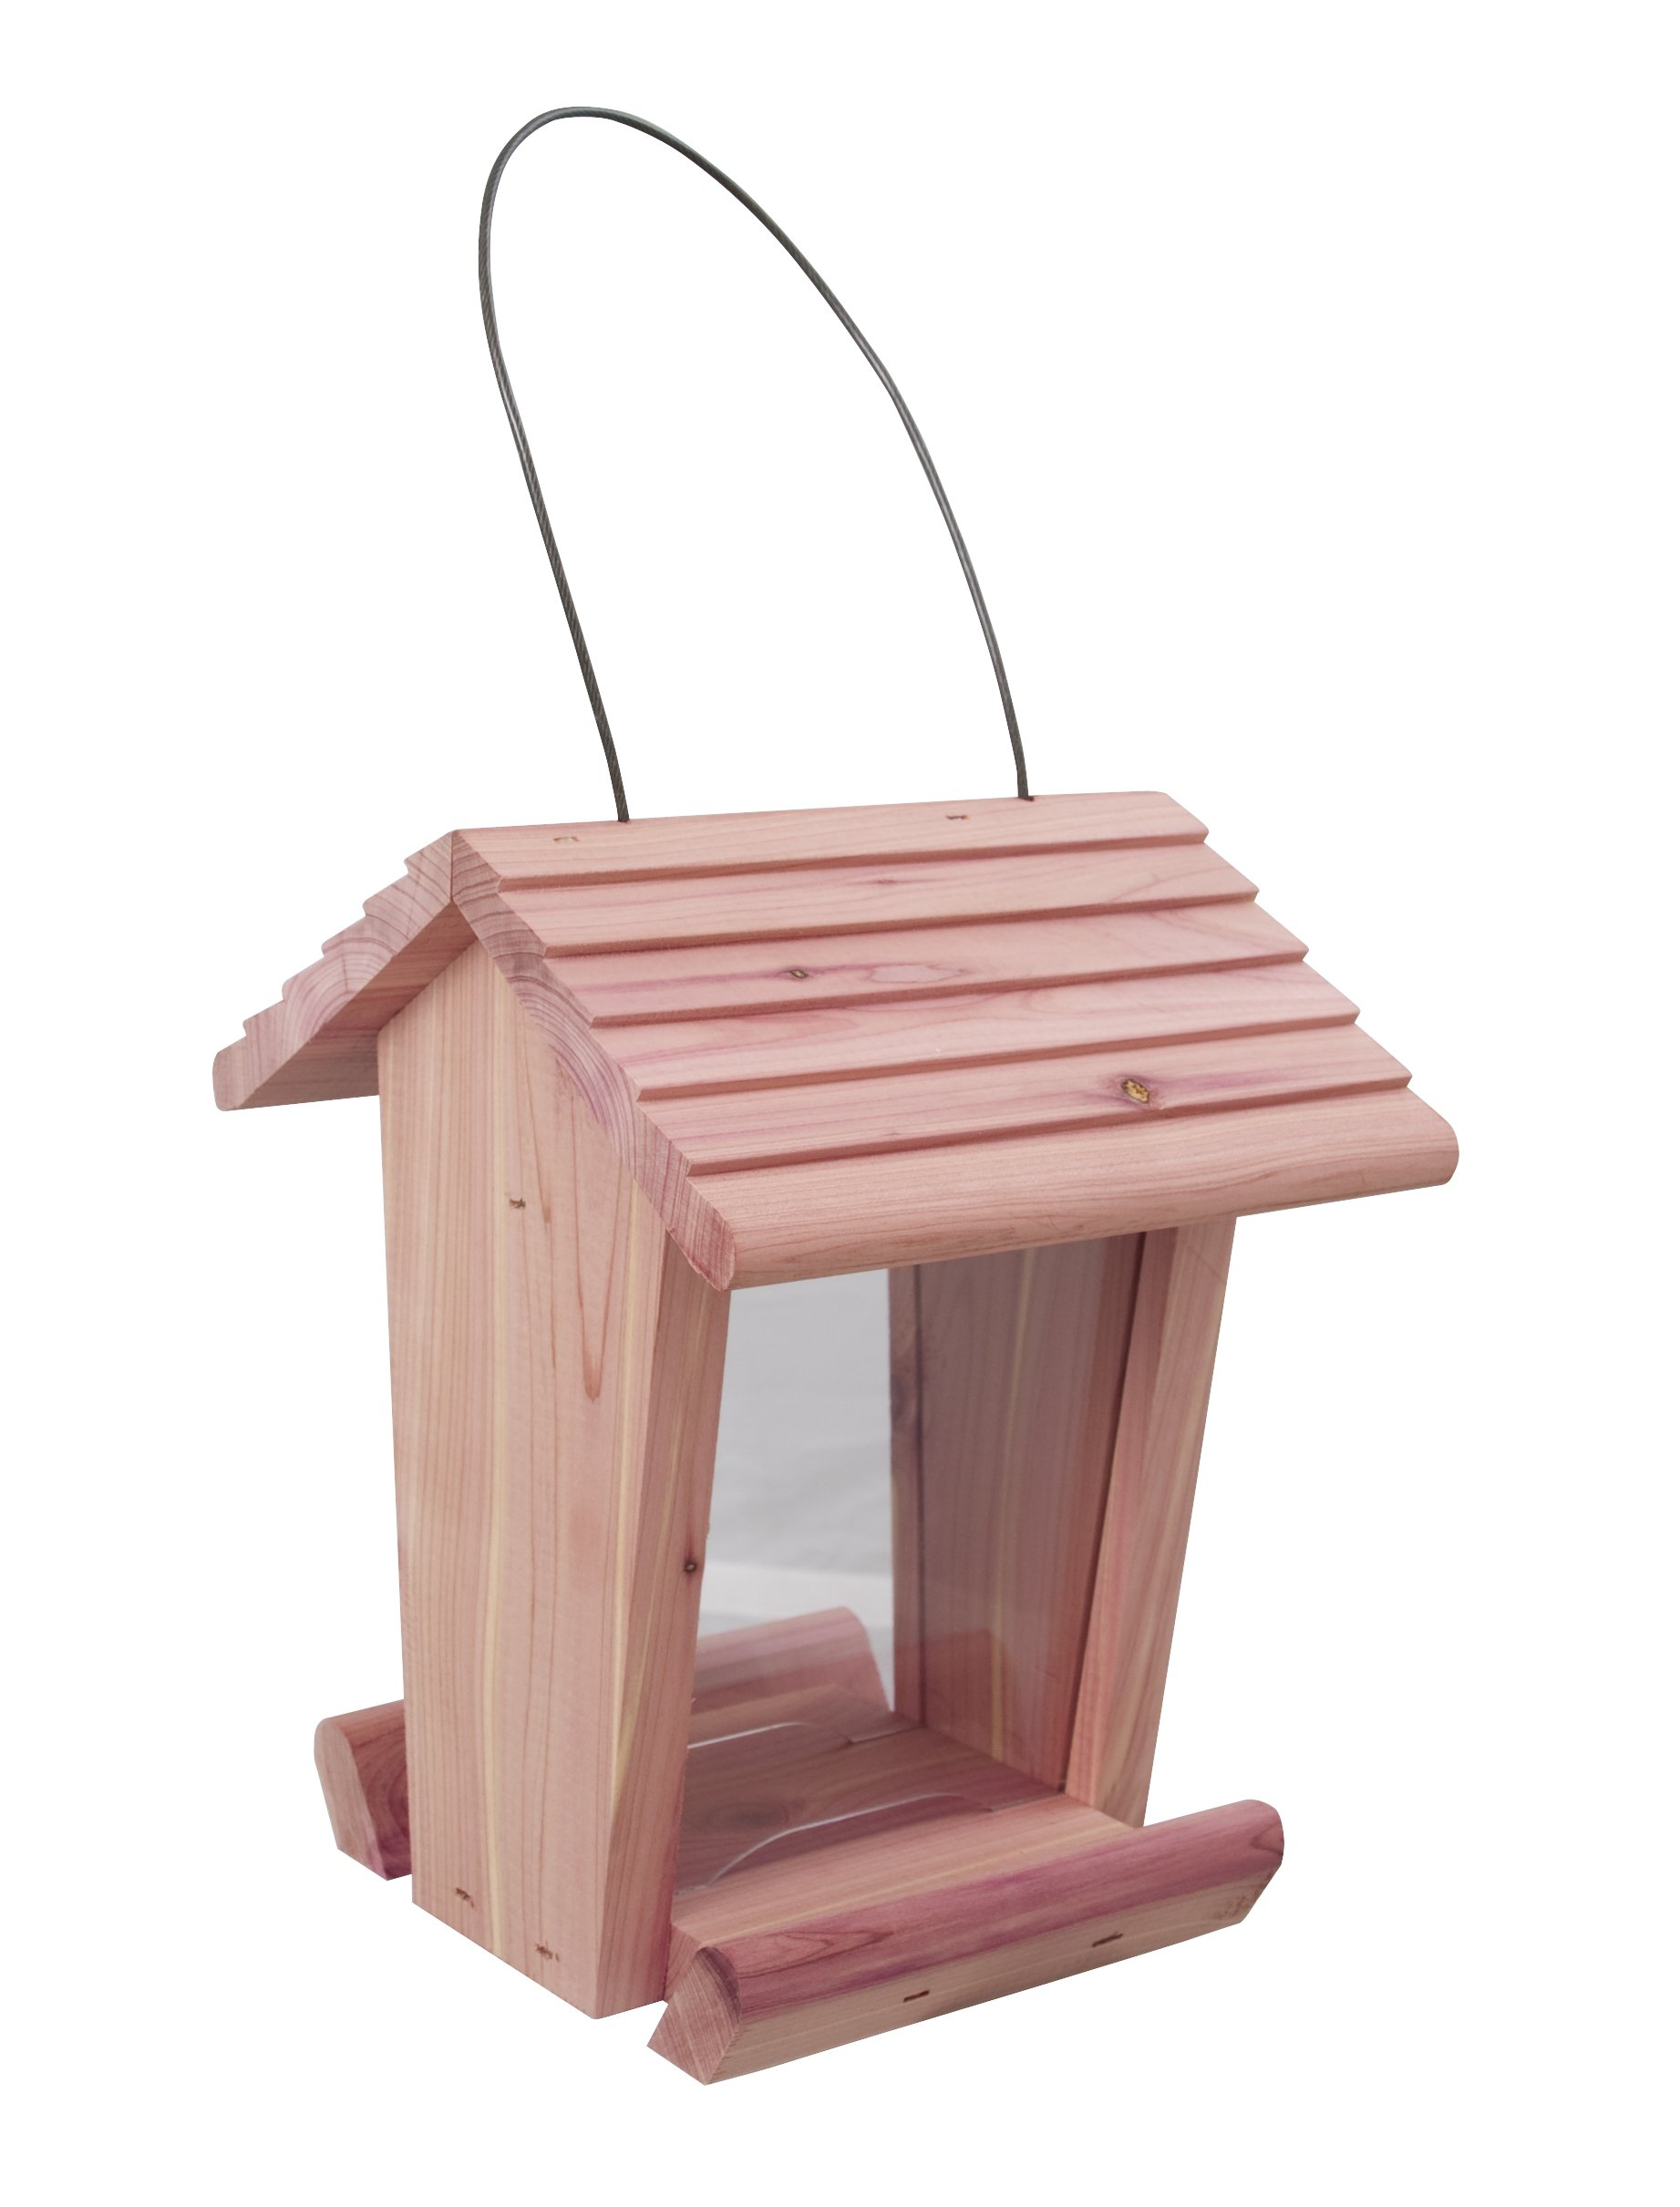 Pennington 100513431 Cedar Treater Bird Feeder, 2 LBS Capacity,